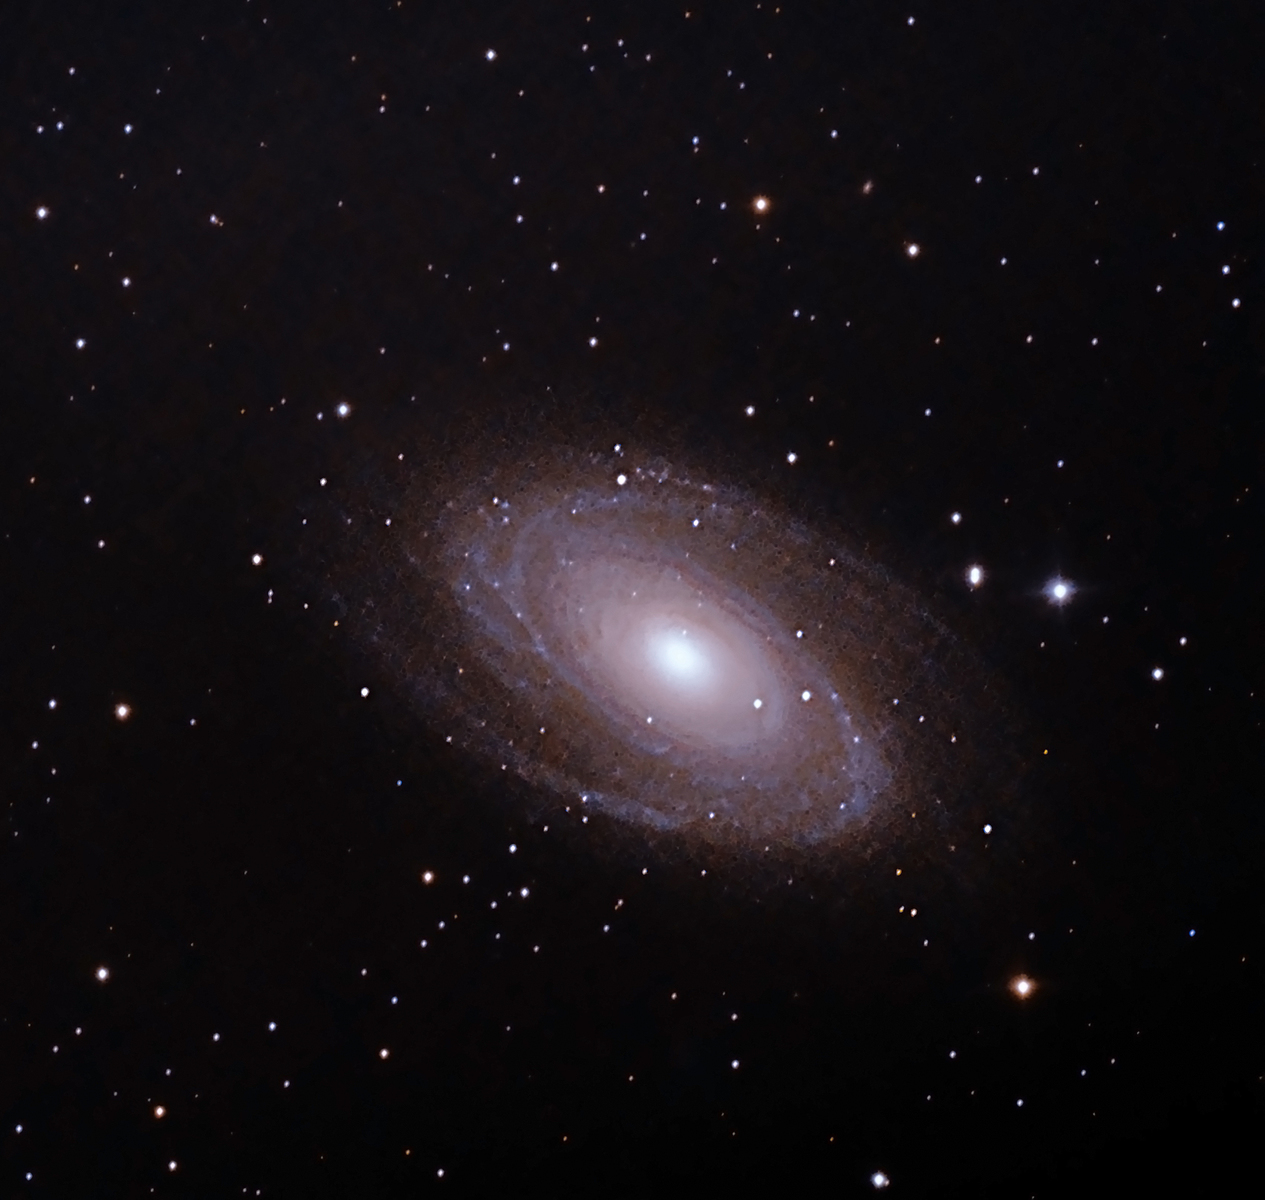 M81 crop Nik collection 2.jpg